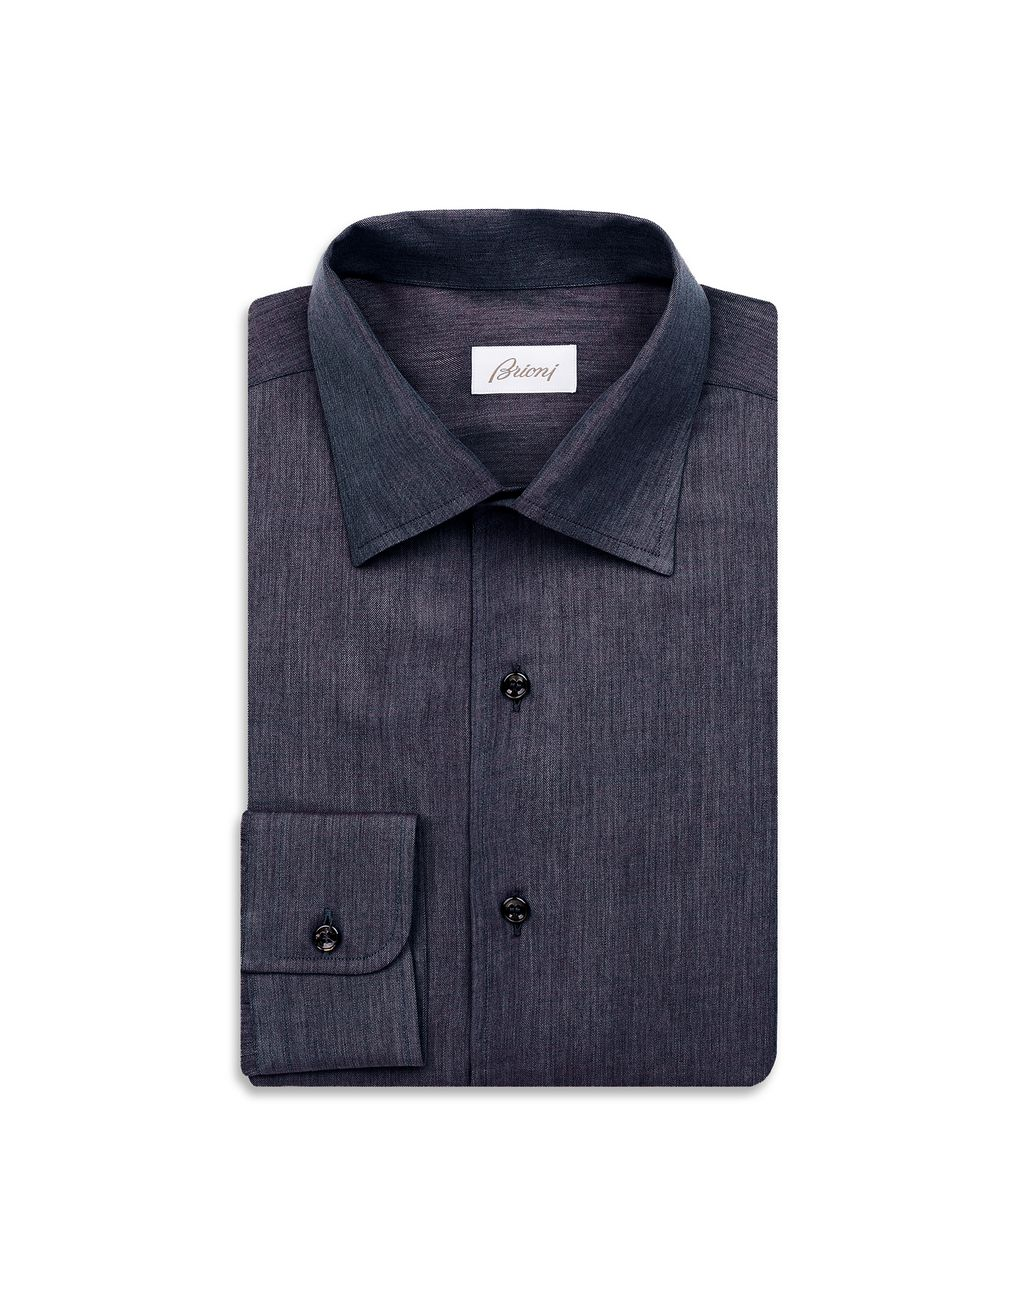 BRIONI Navy Blue Slim Fit Shirt Leisure shirt Man f